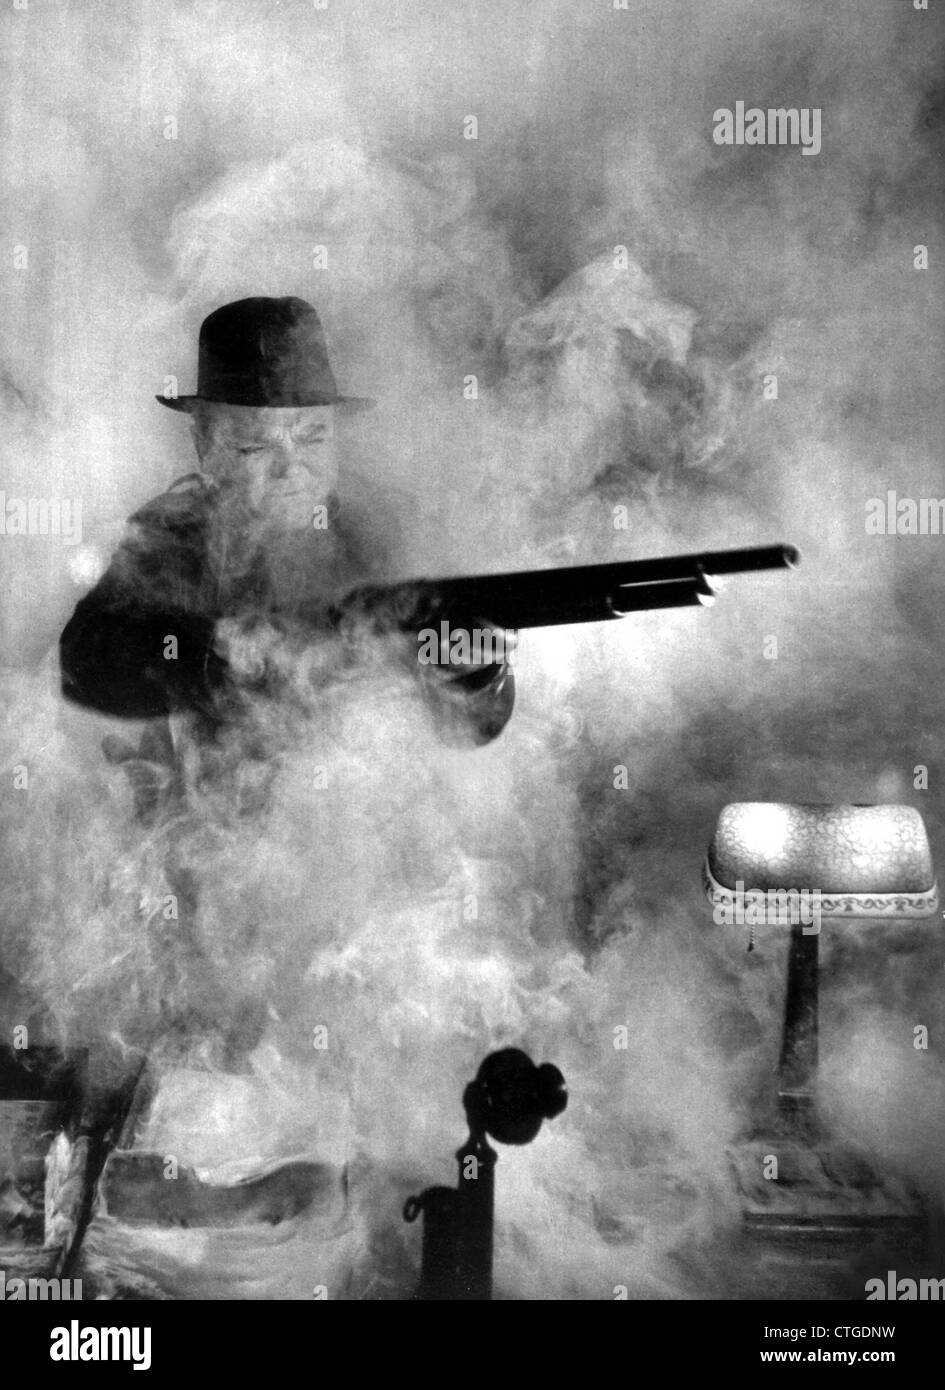 WHITE HEAT (1949) JAMES CAGNEY, RAOUL WALSH (DIR) 010 MOVIESTORE COLLECTION LTD - Stock Image